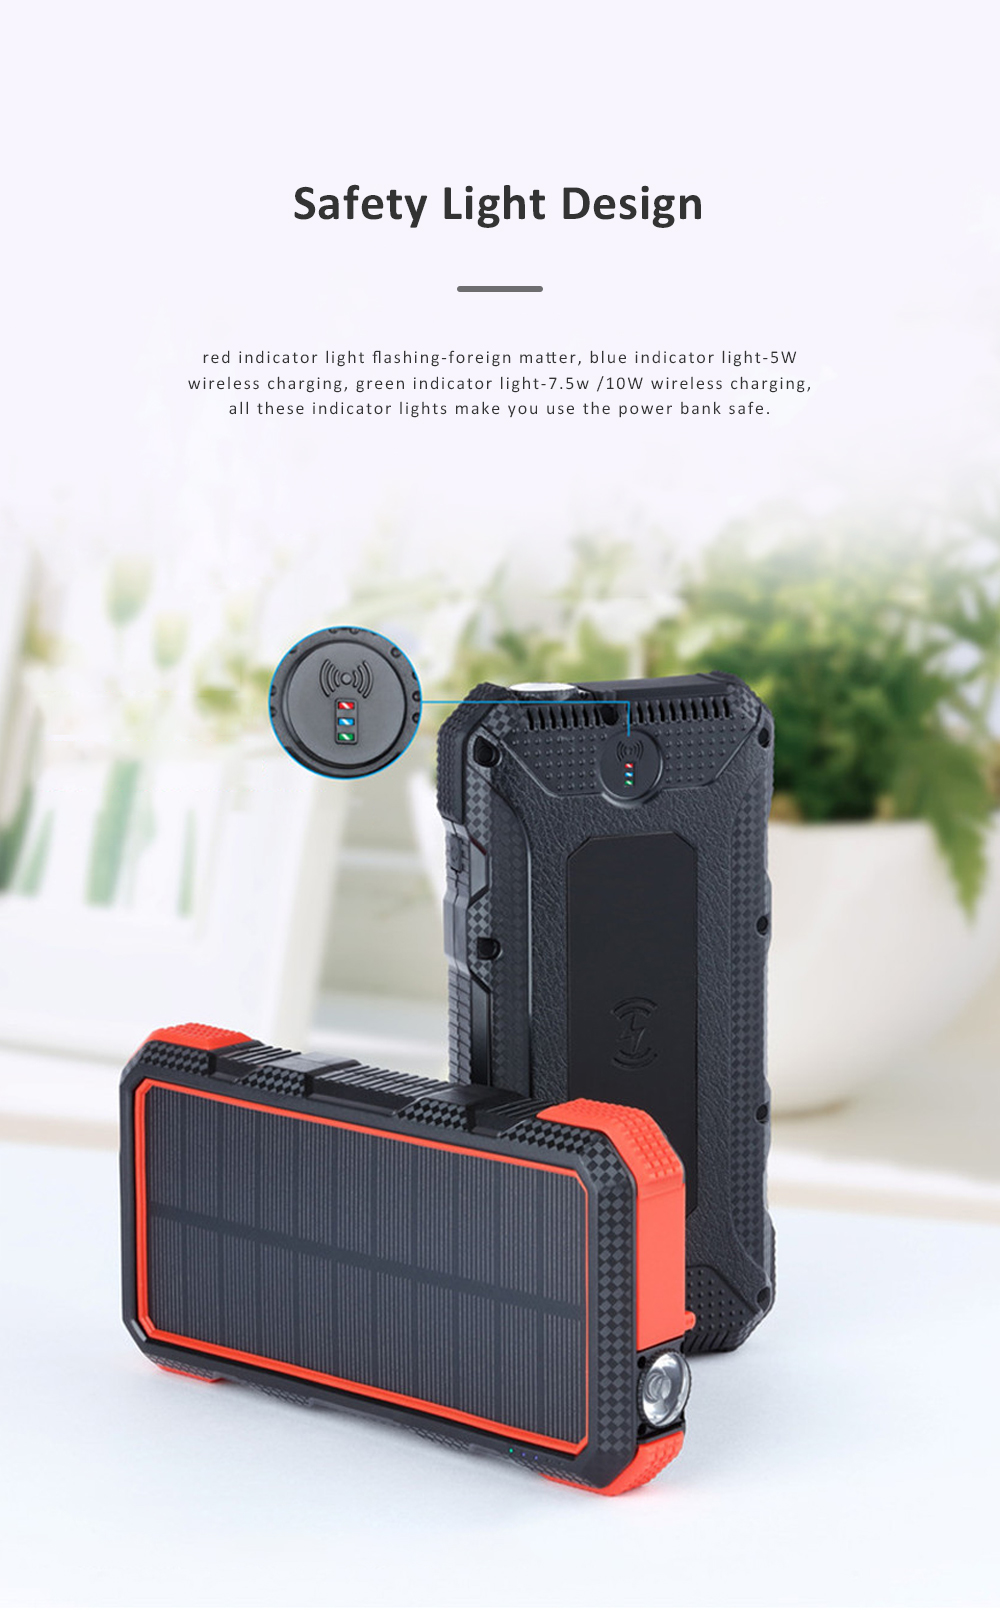 24000mAh Portable Solar Charger Two-way Type-C Power Bank with Flashlight and Metal Hook for Mobile Phone iPad MP3 MP4 2